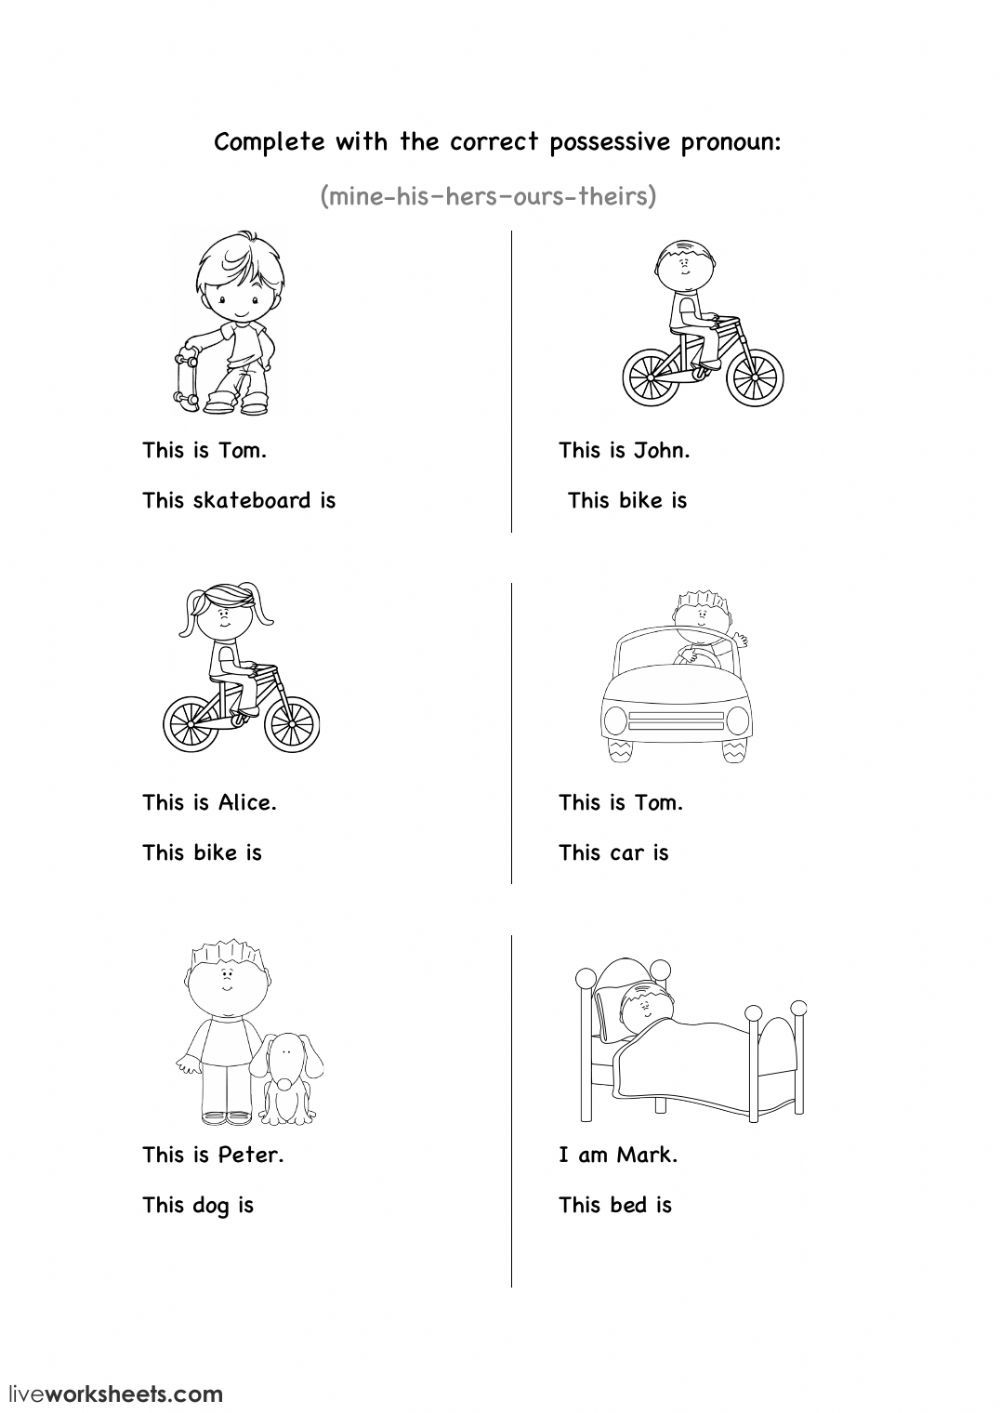 Possessive Pronouns Esol Worksheet You Can Do The Exercises Online Or Download The Worksheet As Pdf Possessive Pronoun Possessives Nouns Worksheet